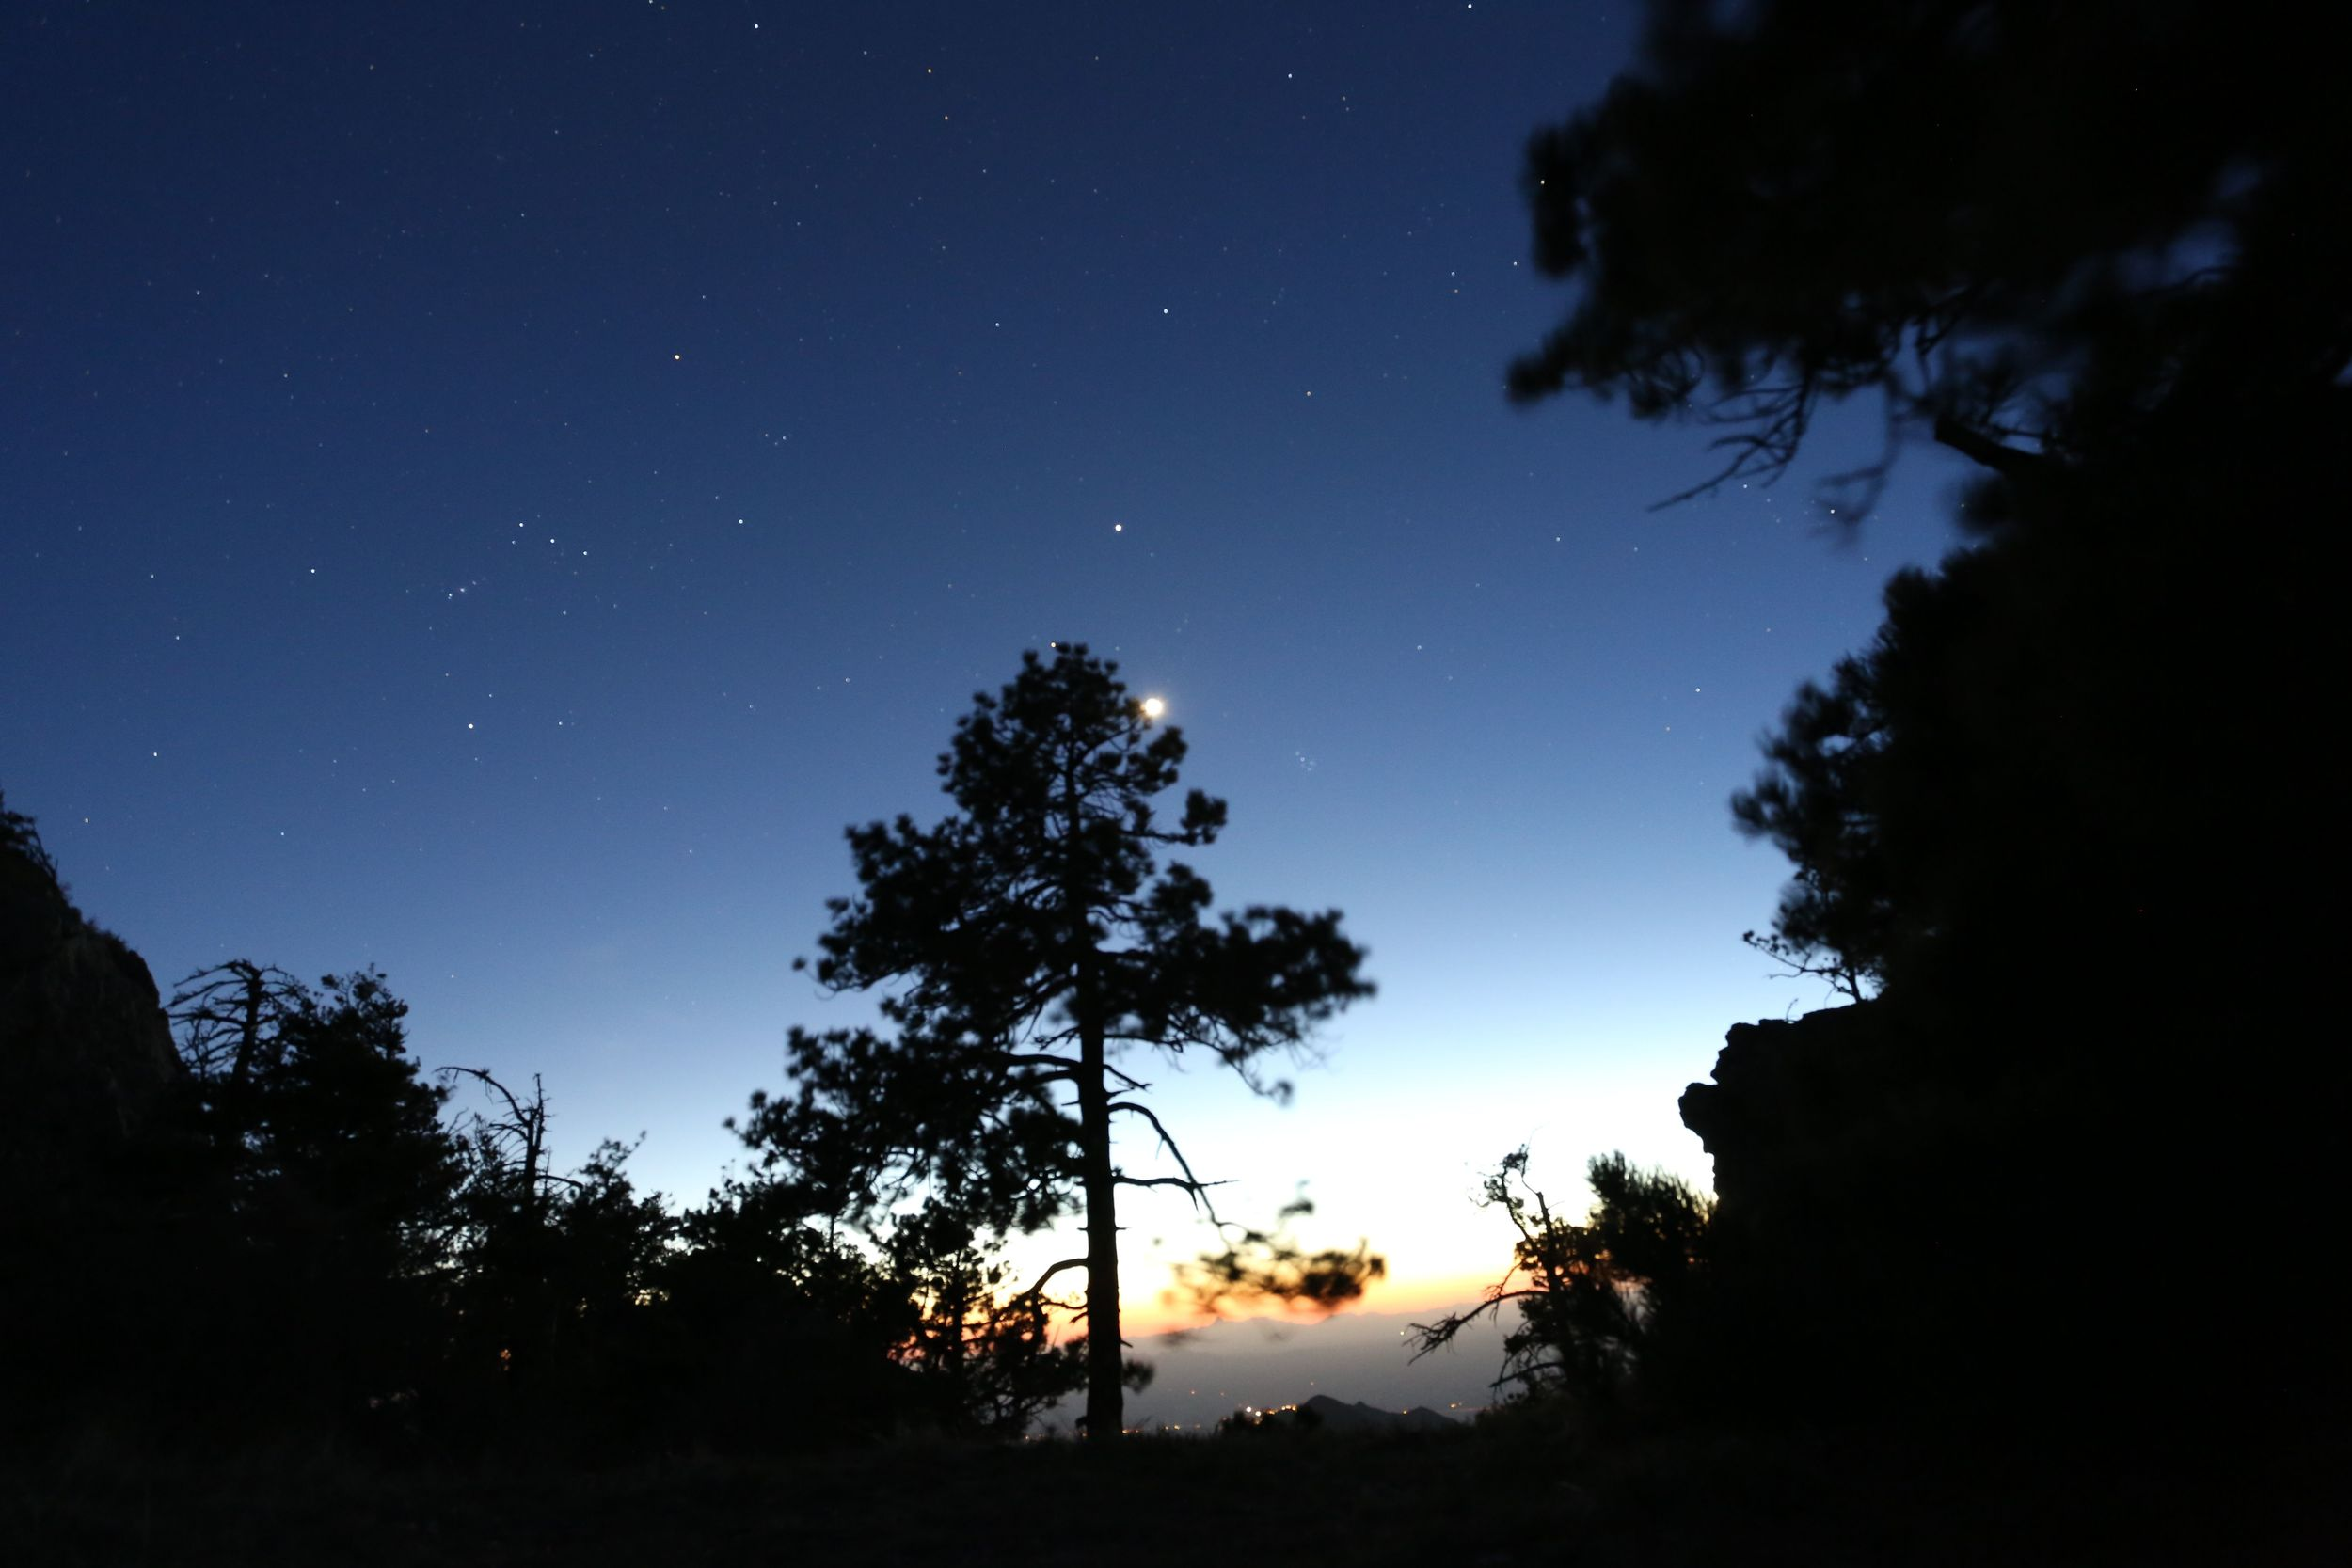 Southern Arizona is well known for its clear night skies and good night time star gazing.  Here Orion and a crescent moon set in the west, soon after sunset.